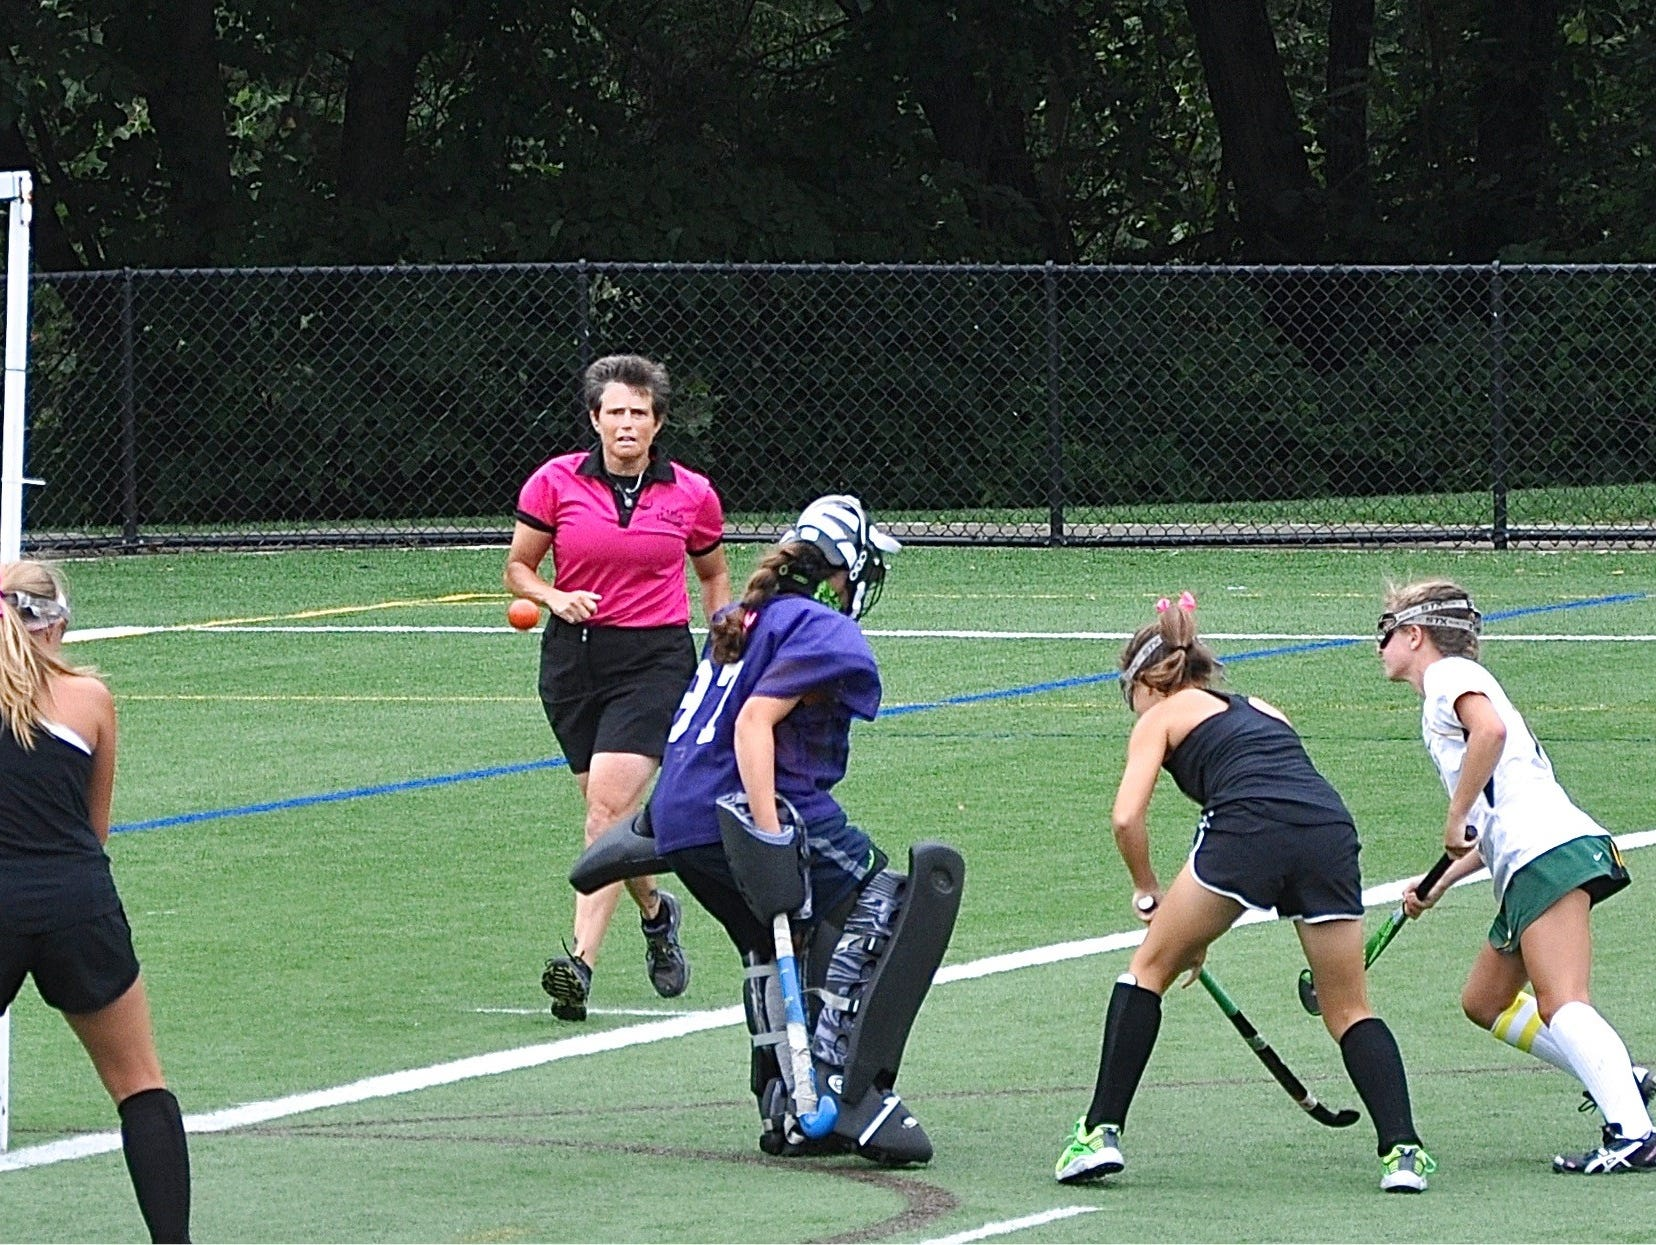 Cali Cortese (r) scores winning goal for Lakeland in benefit scrimmage game..